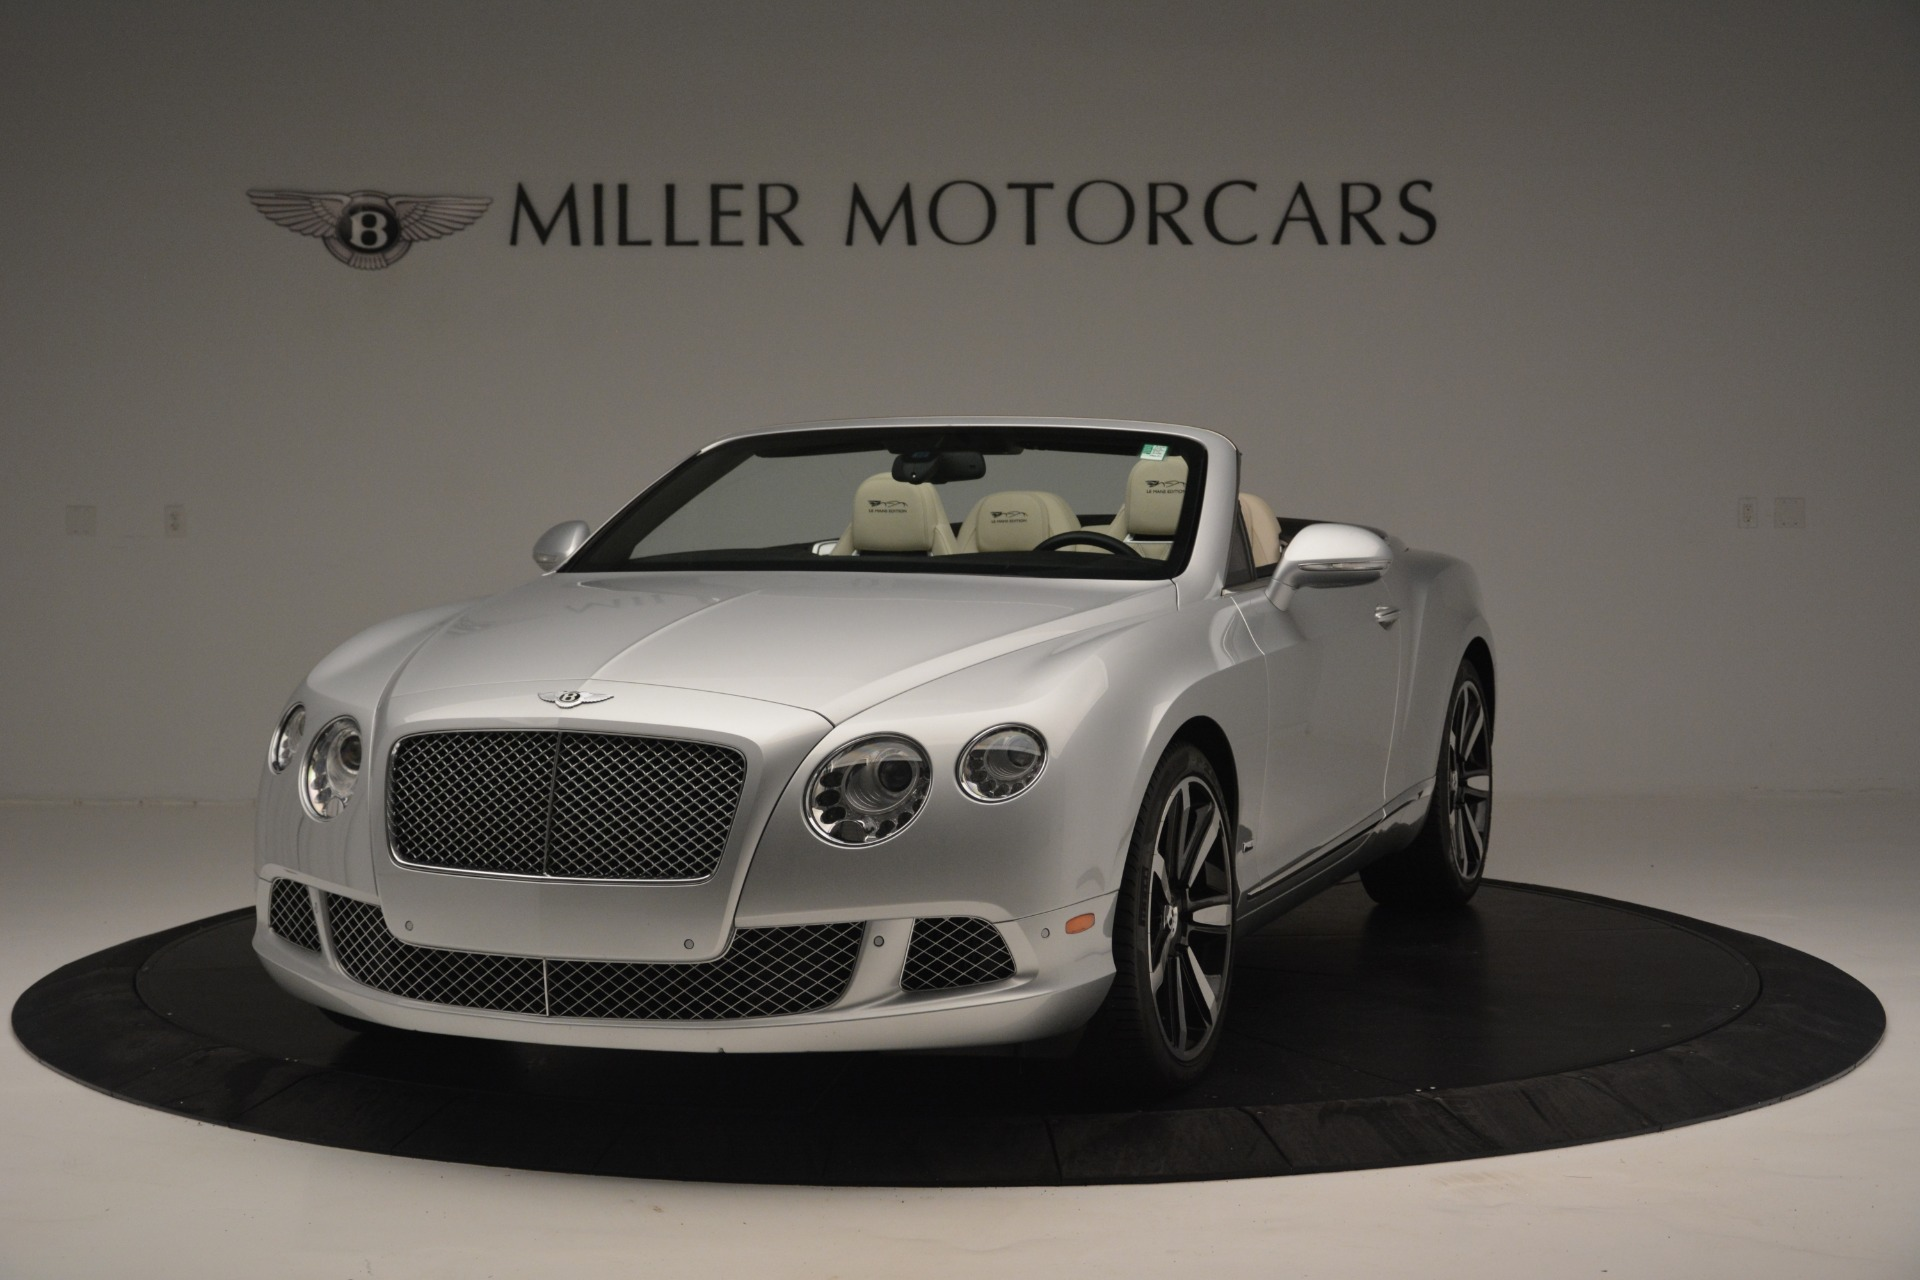 Used 2013 Bentley Continental GT W12 Le Mans Edition for sale Sold at Bugatti of Greenwich in Greenwich CT 06830 1